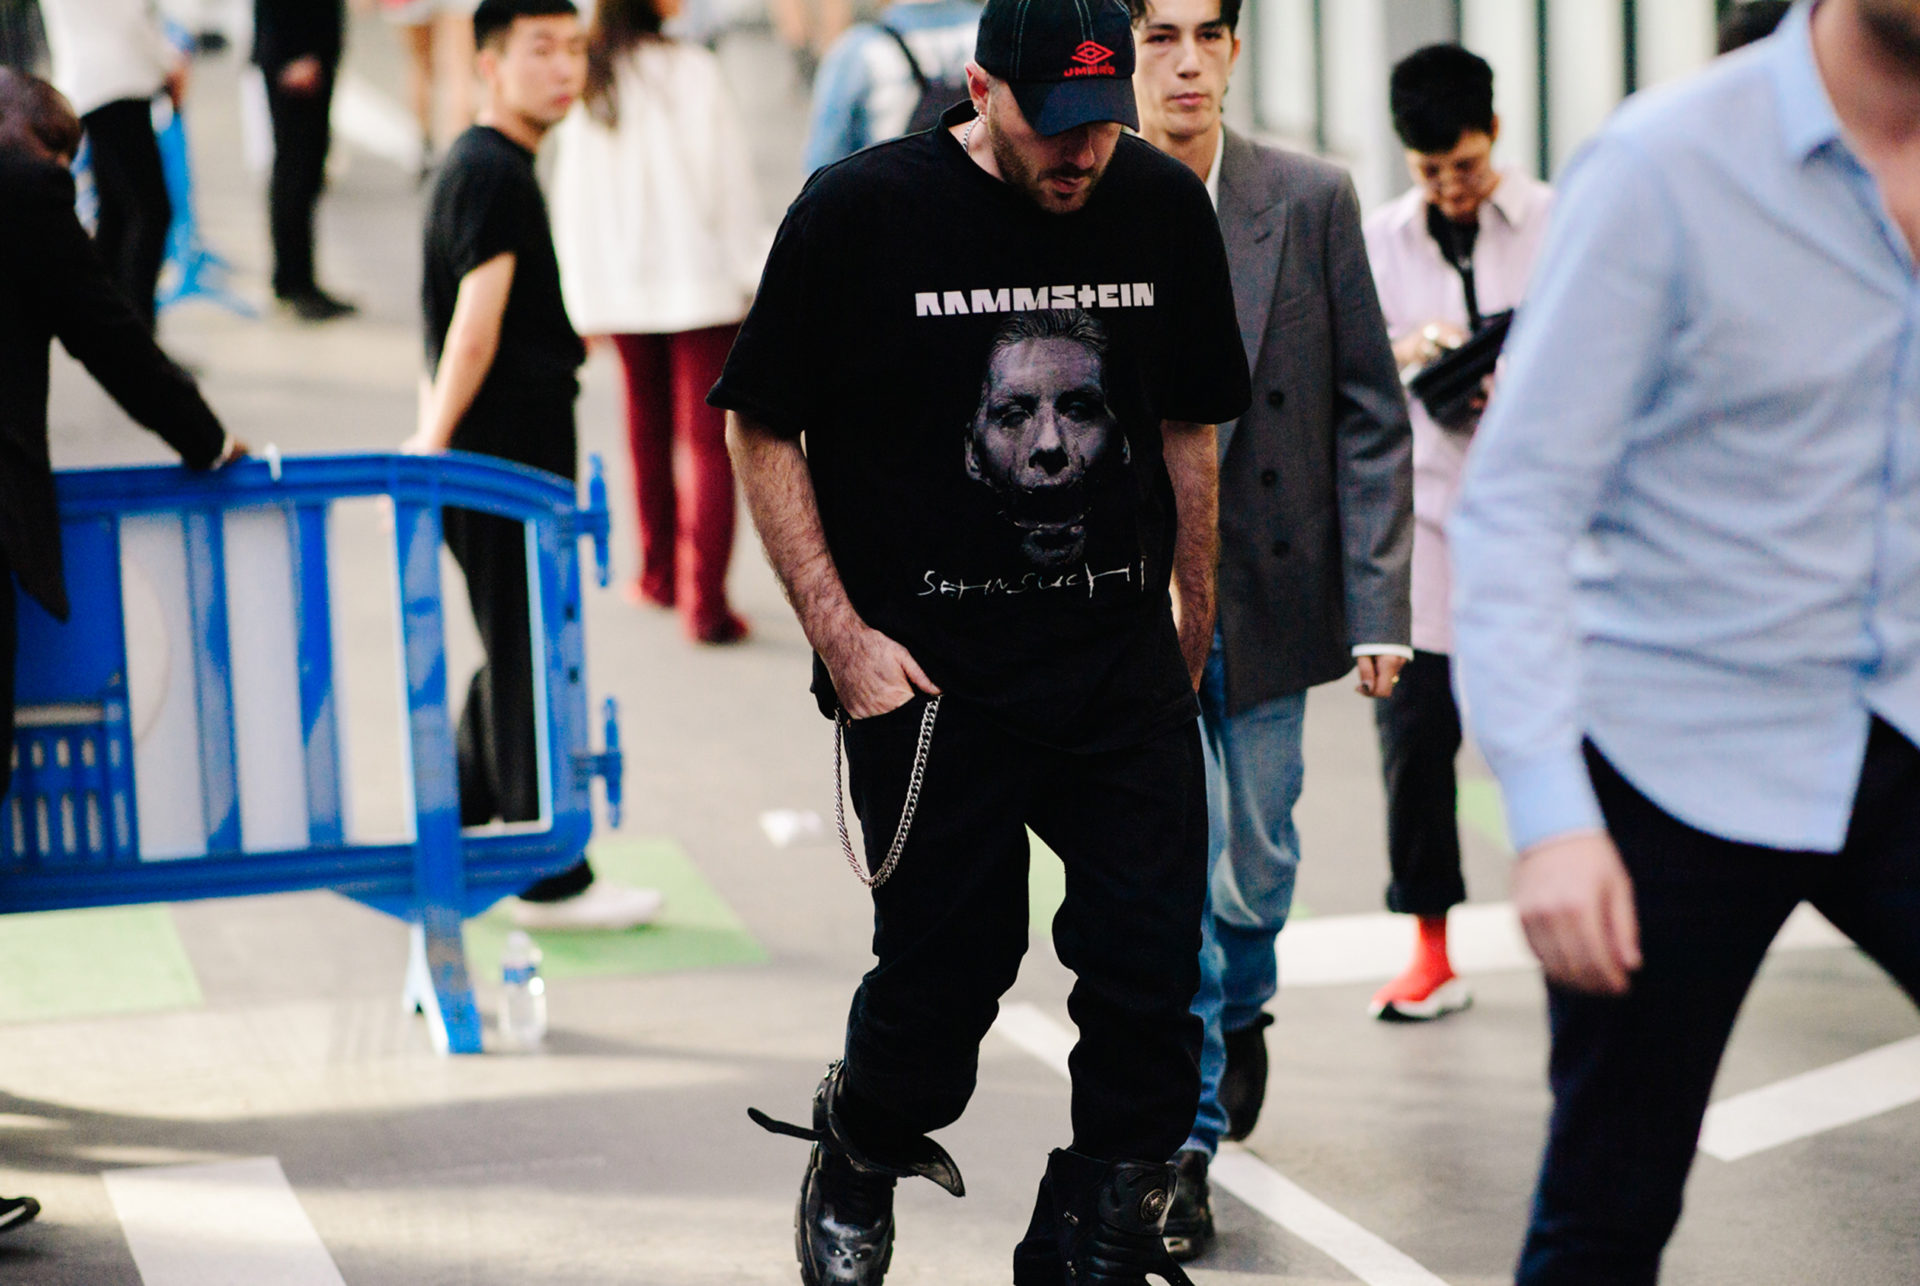 Photo courtesy of Adam Katz Sinding